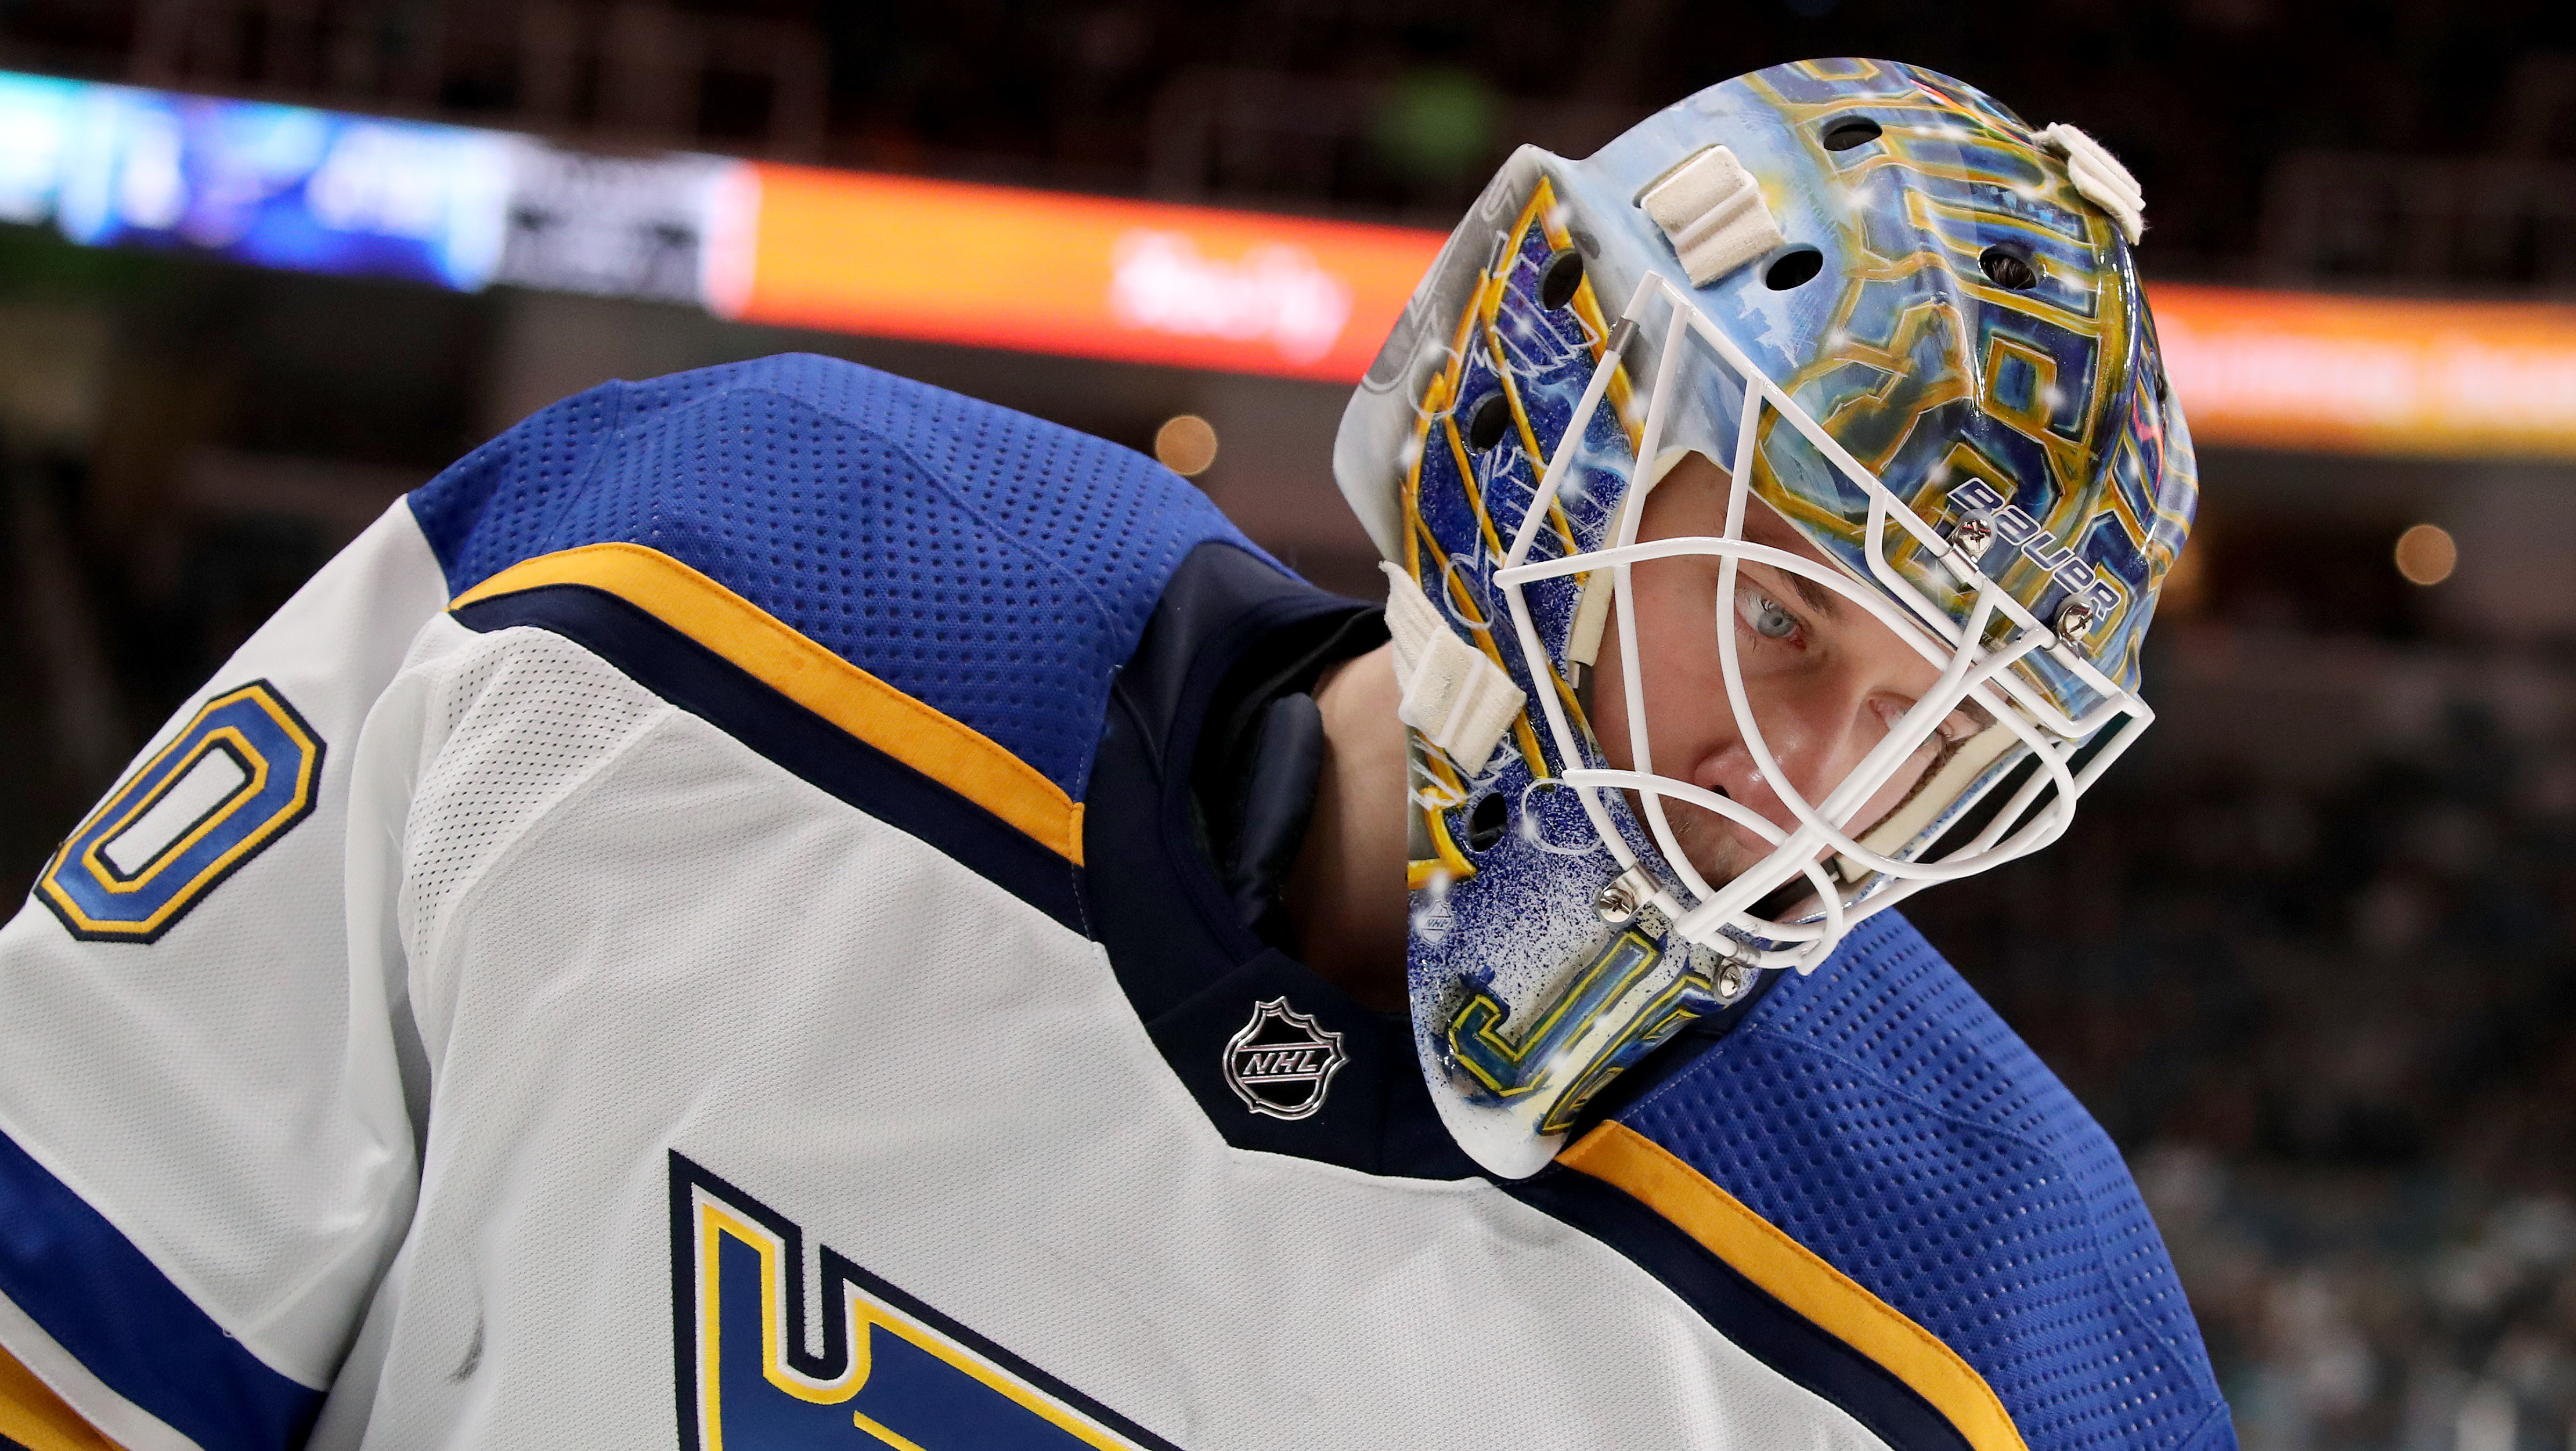 0ab21d498 Jordan Binnington, starting goaltender for the St. Louis Blues, looks on  during the first game of the Blues' playoff series with the San Jose Sharks  earlier ...